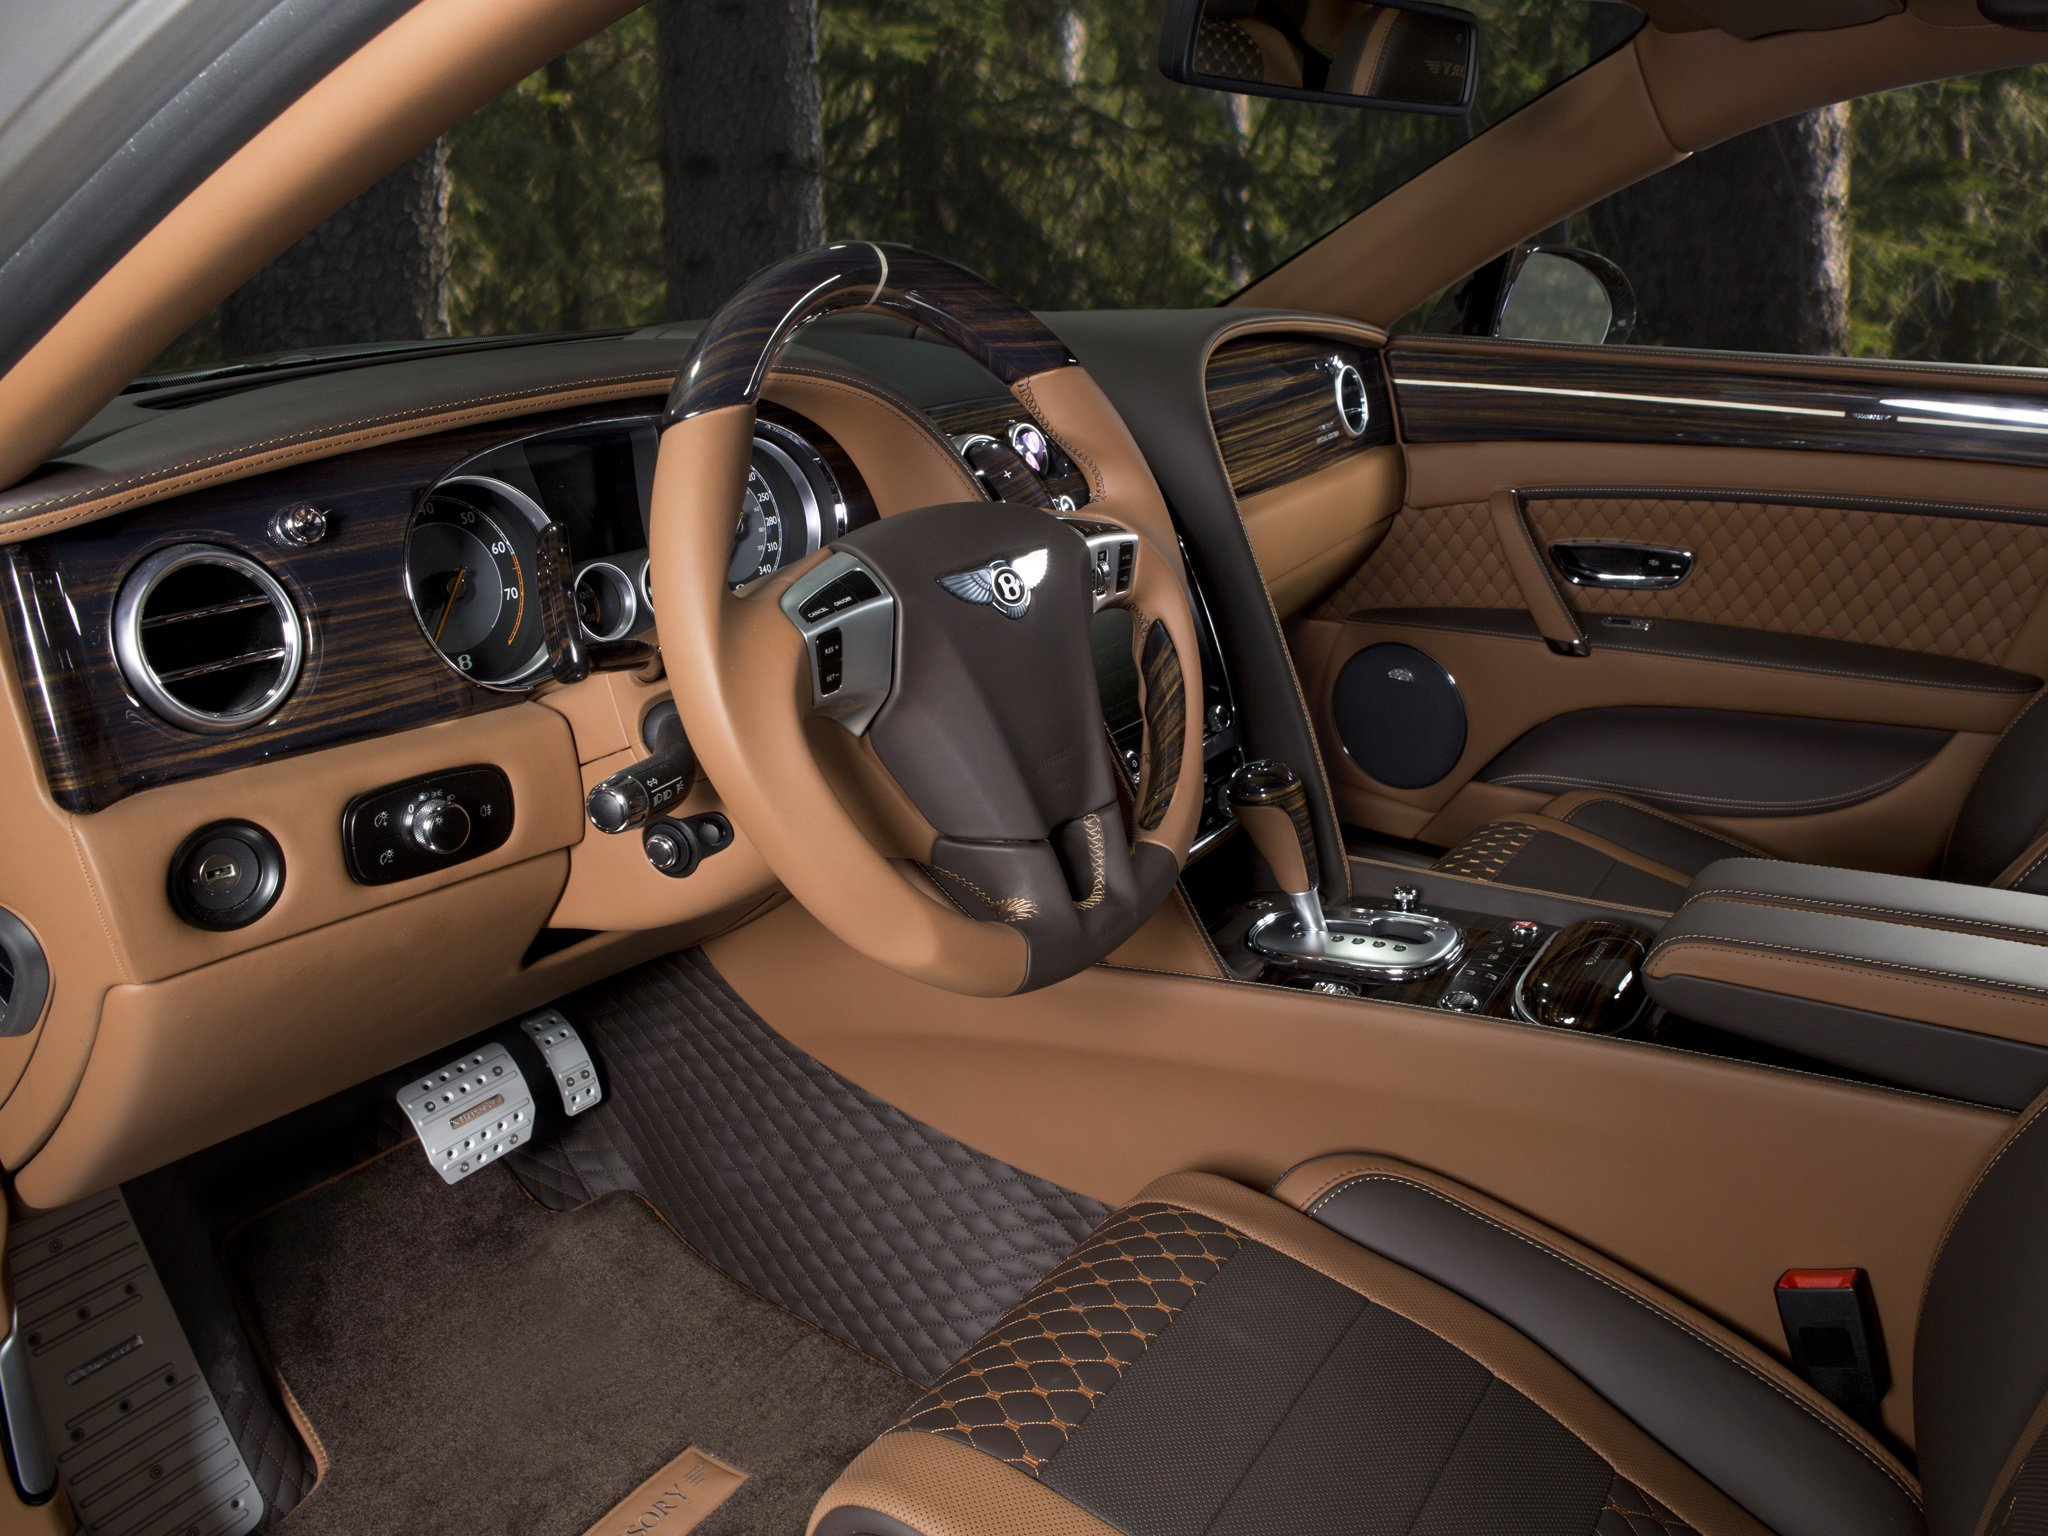 2014 mansory bentley continental flying spur luxury interior g 2014 mansory bentley continental flying spur luxury interior g wallpaper 2048x1536 287782 wallpaperup vanachro Images